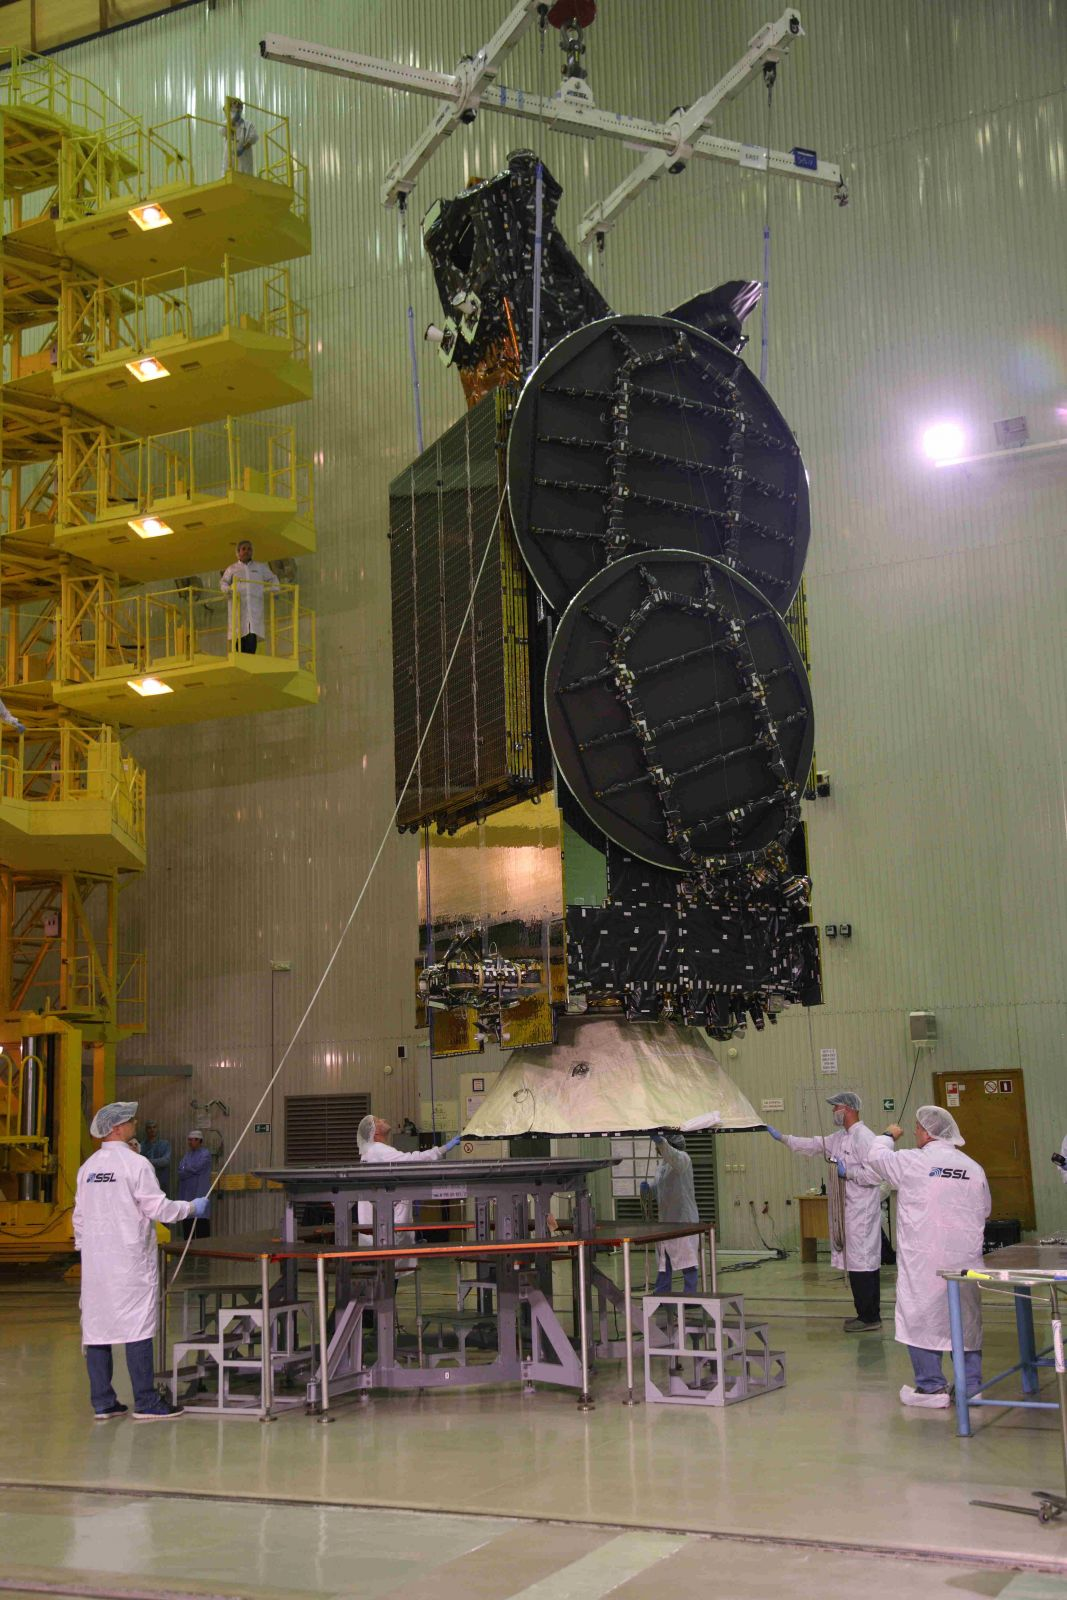 AsiaSat 9 satellite.